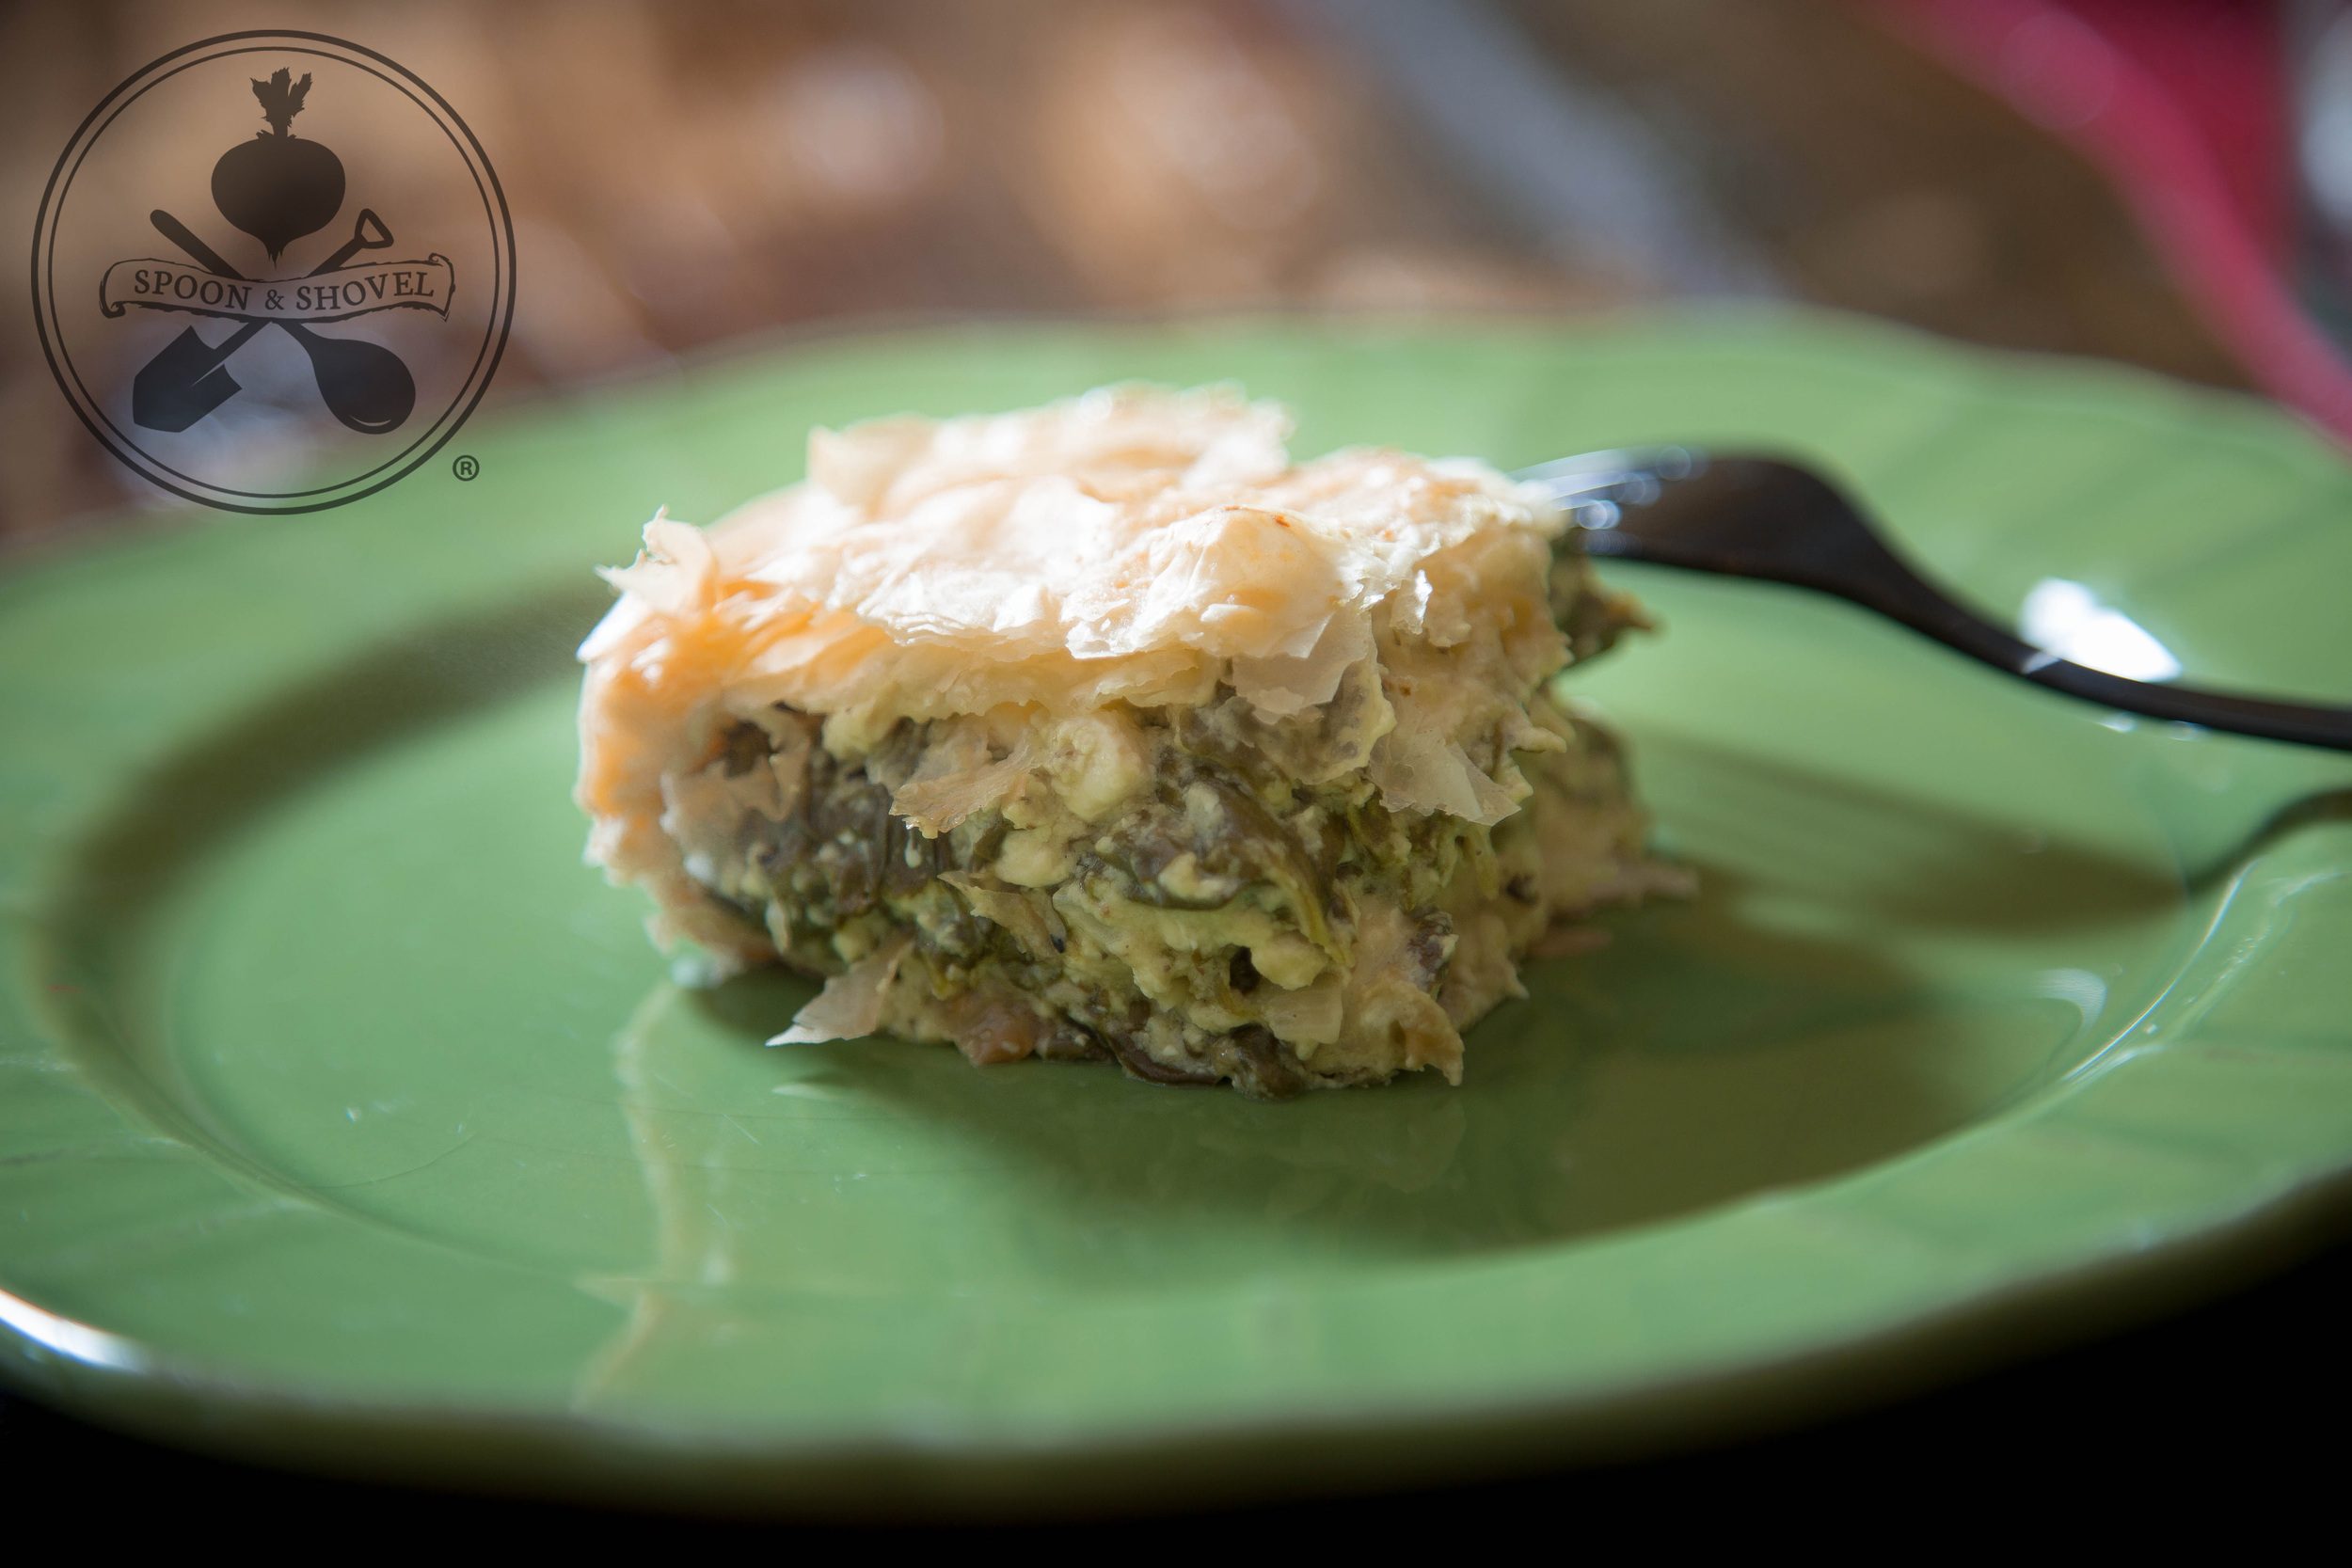 Vegan spanakopita from The Spoon + Shovel